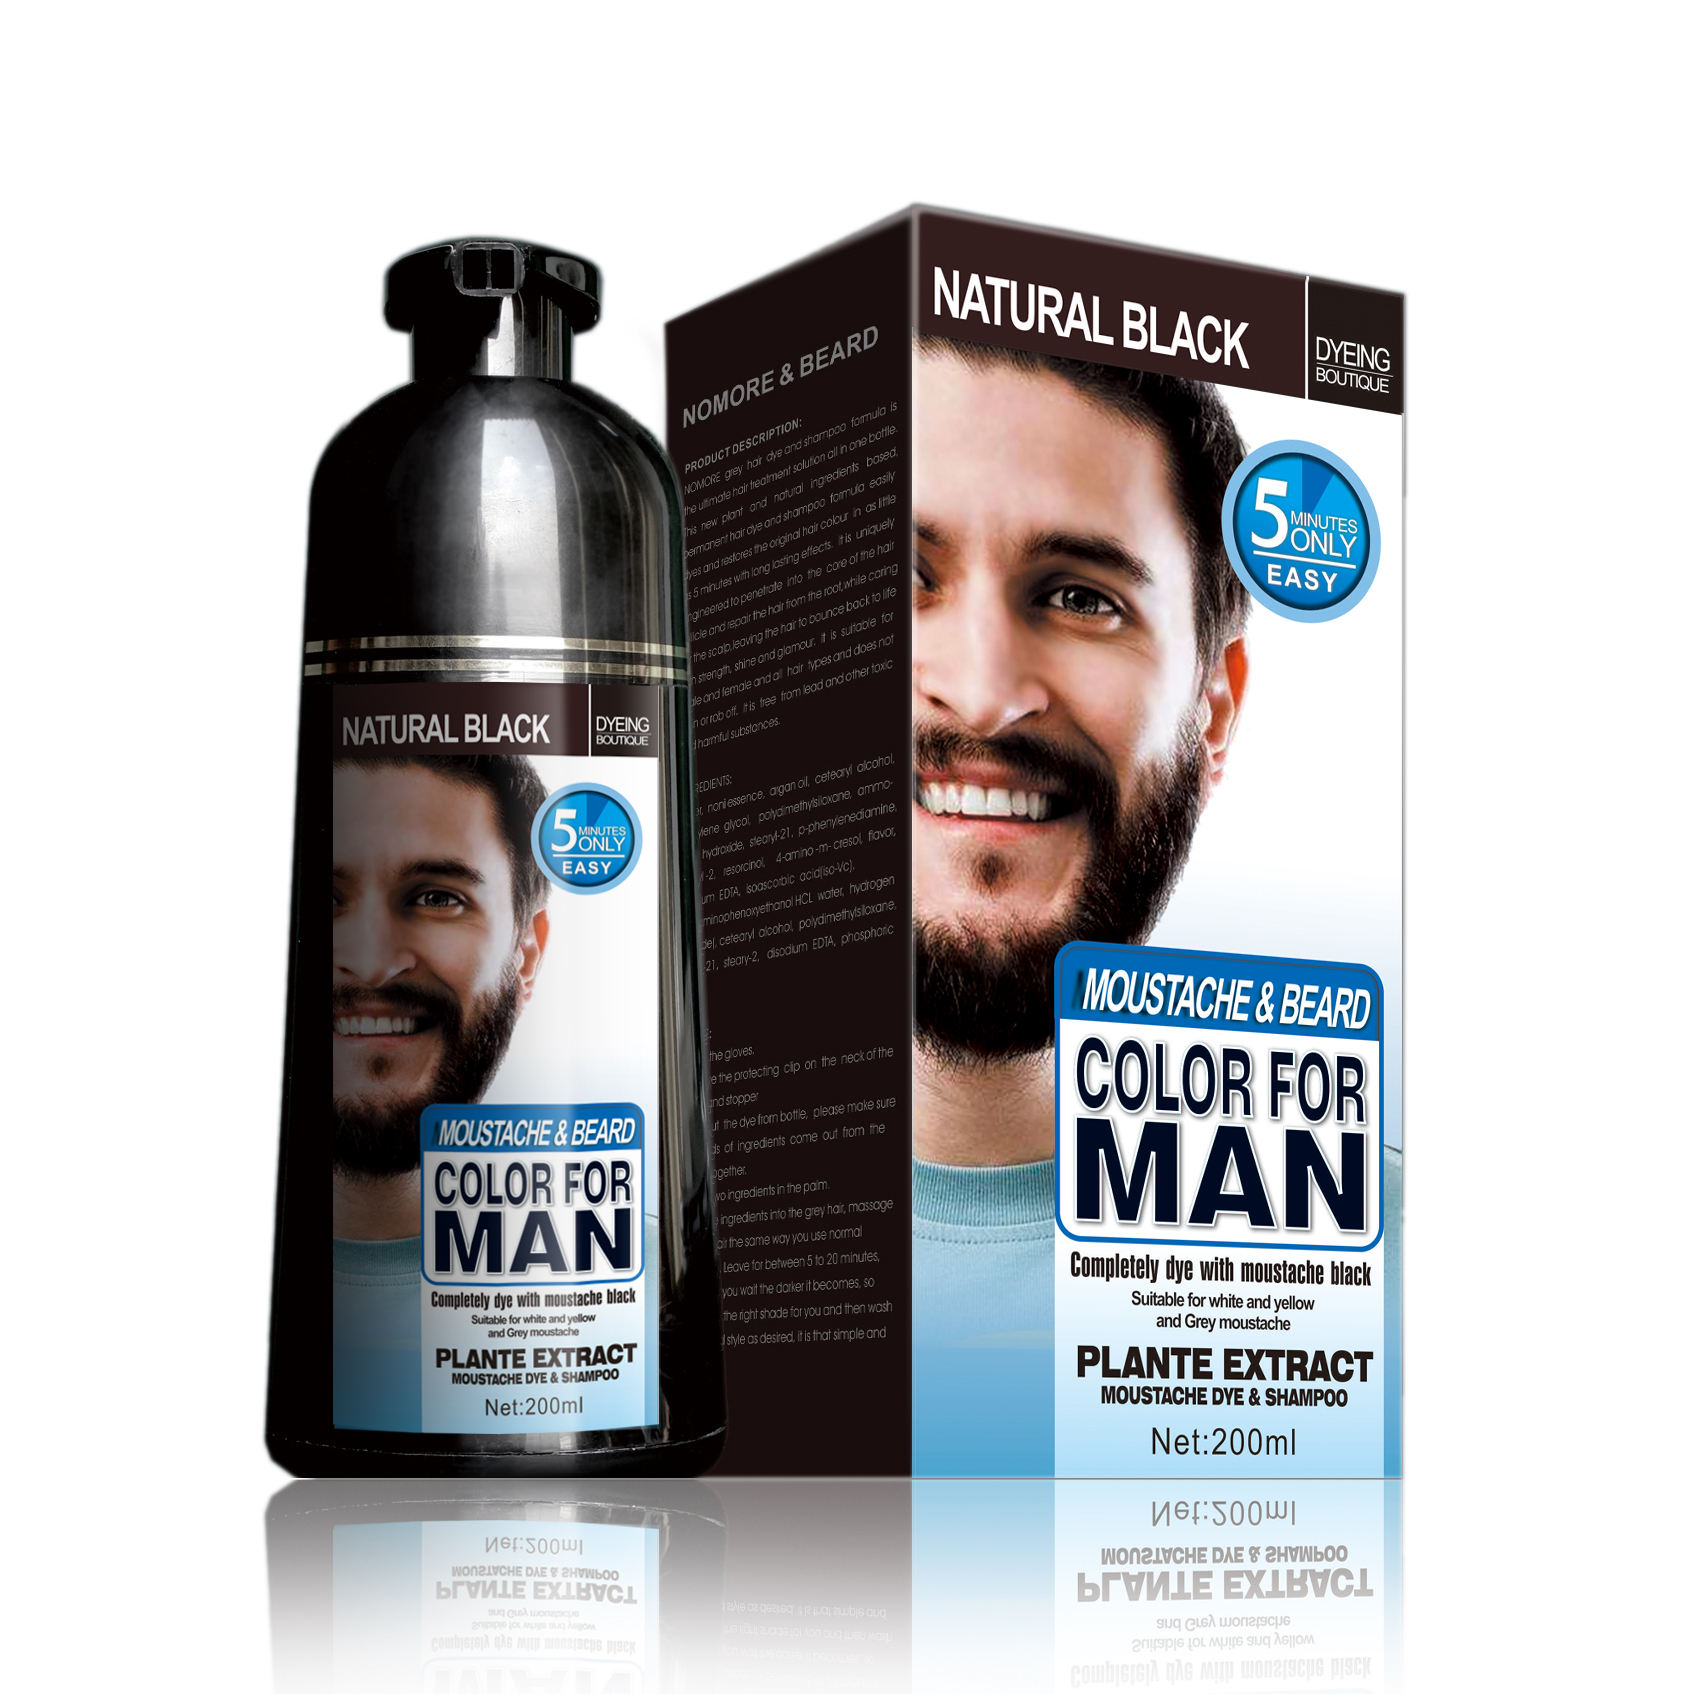 MOKERU black color dye shampoo for beard or hair 5 mins fast color dye shampoo for beard with private label